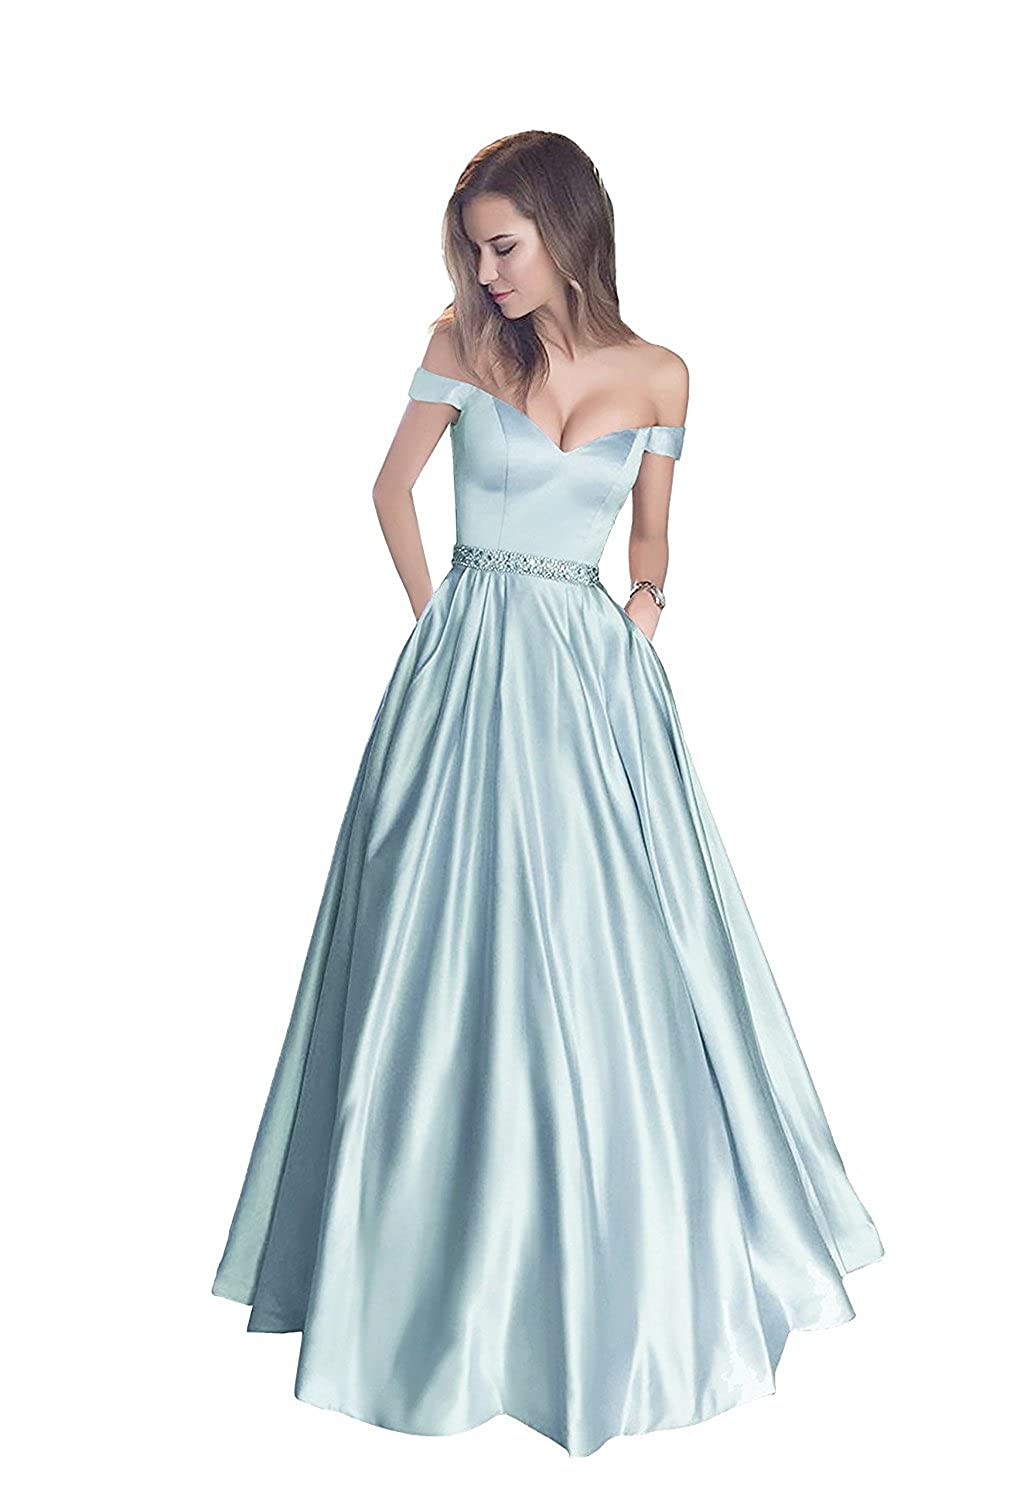 bluee1 LISA.MOON Women's V Neck Long Sleeves Back Hole Lace Applique Pearl Evening Gown